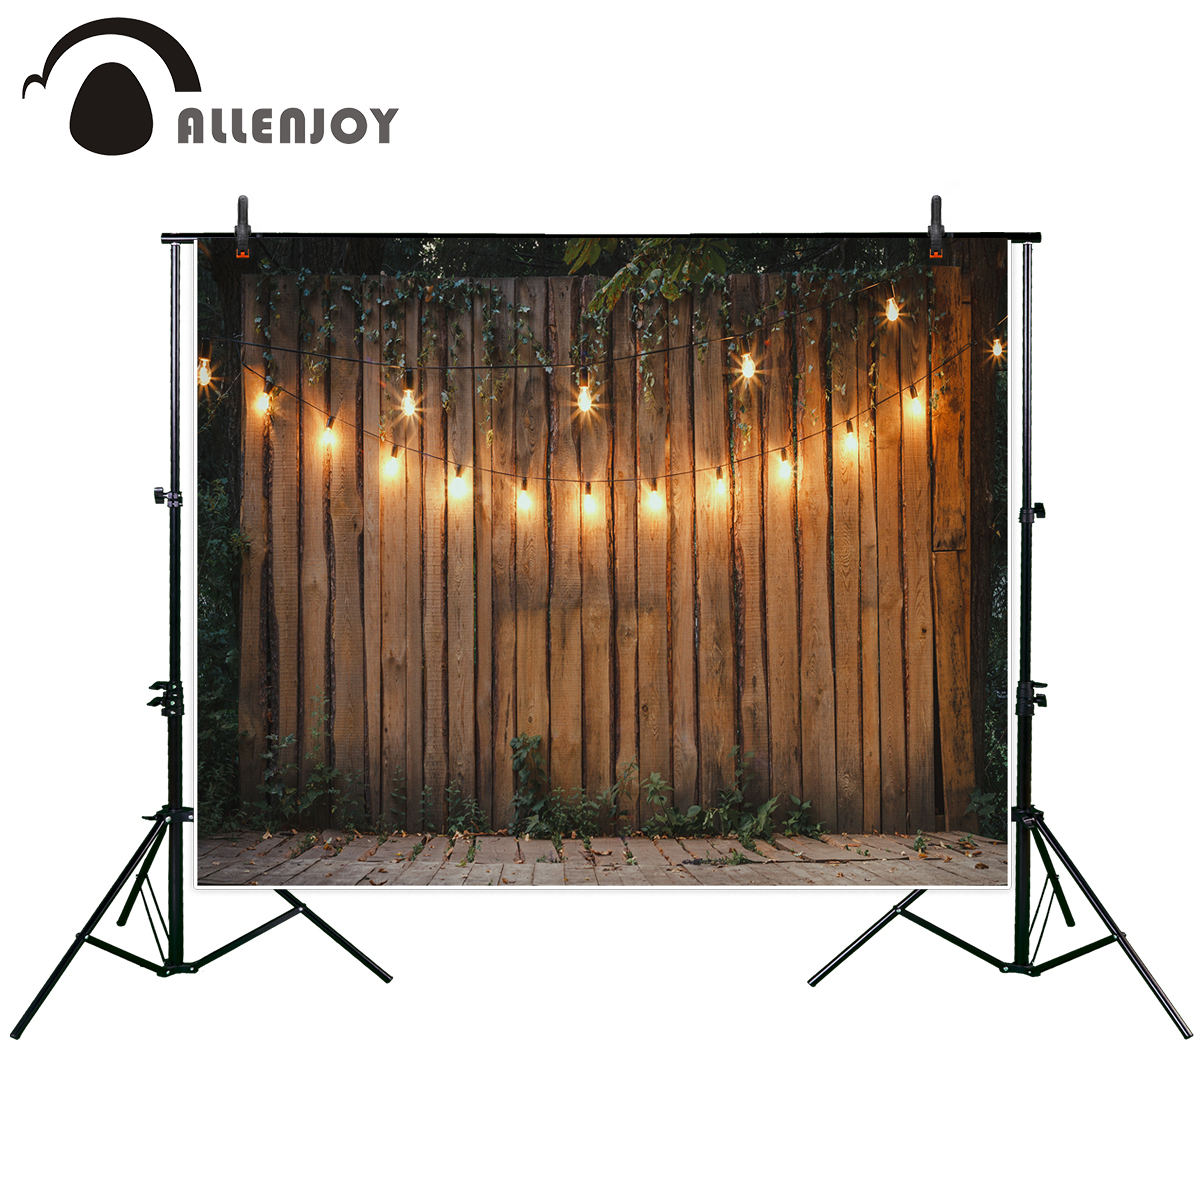 Allenjoy photography backdrop Wooden background lighting garland festive strings round lamps background new original design allenjoy christmas photography backdrop wooden fireplace xmas sock gift children s photocall photographic customize festive